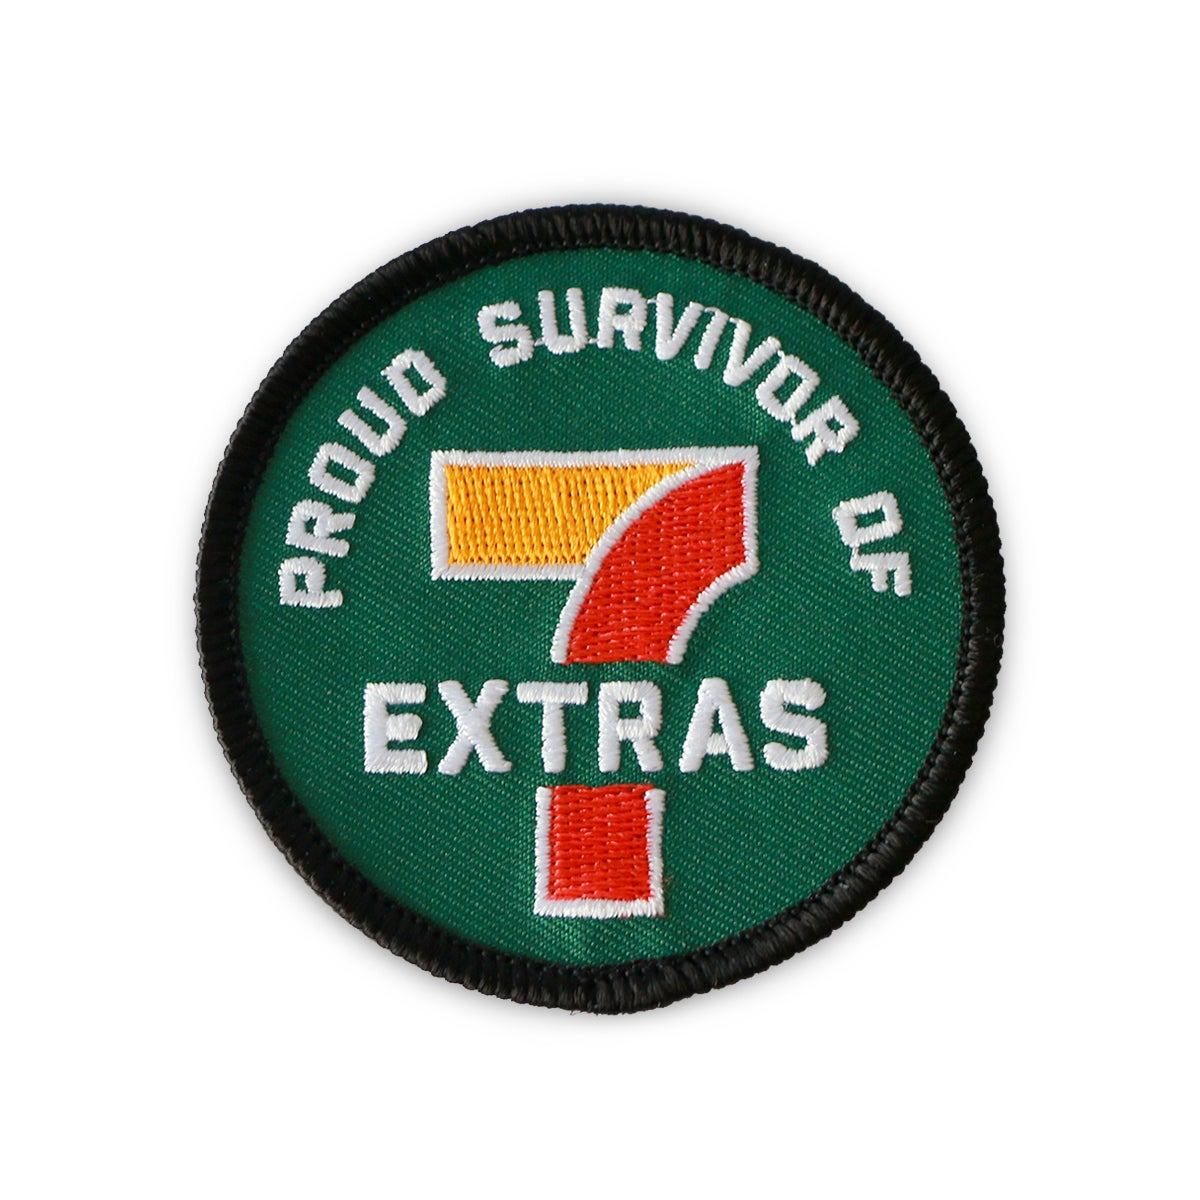 Image of 7 EXTRAS Patch